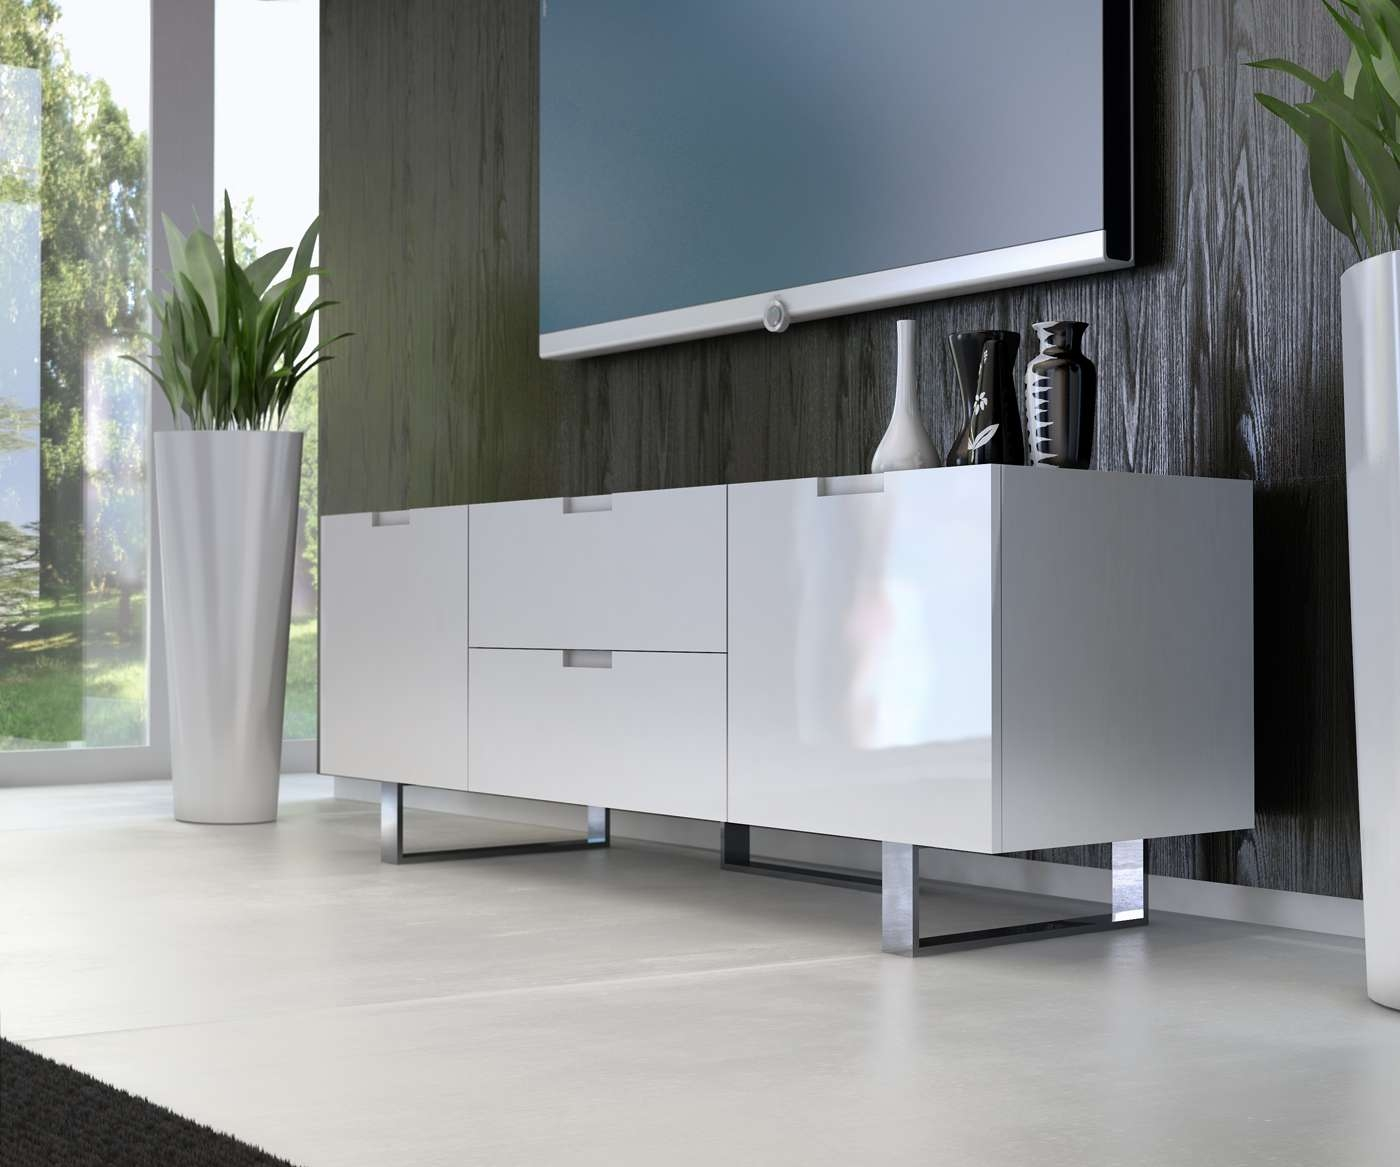 Contemporary Tv Stand In Wenge Walnut Or White Lacquer San Diego Throughout White Contemporary Tv Stands (View 3 of 15)